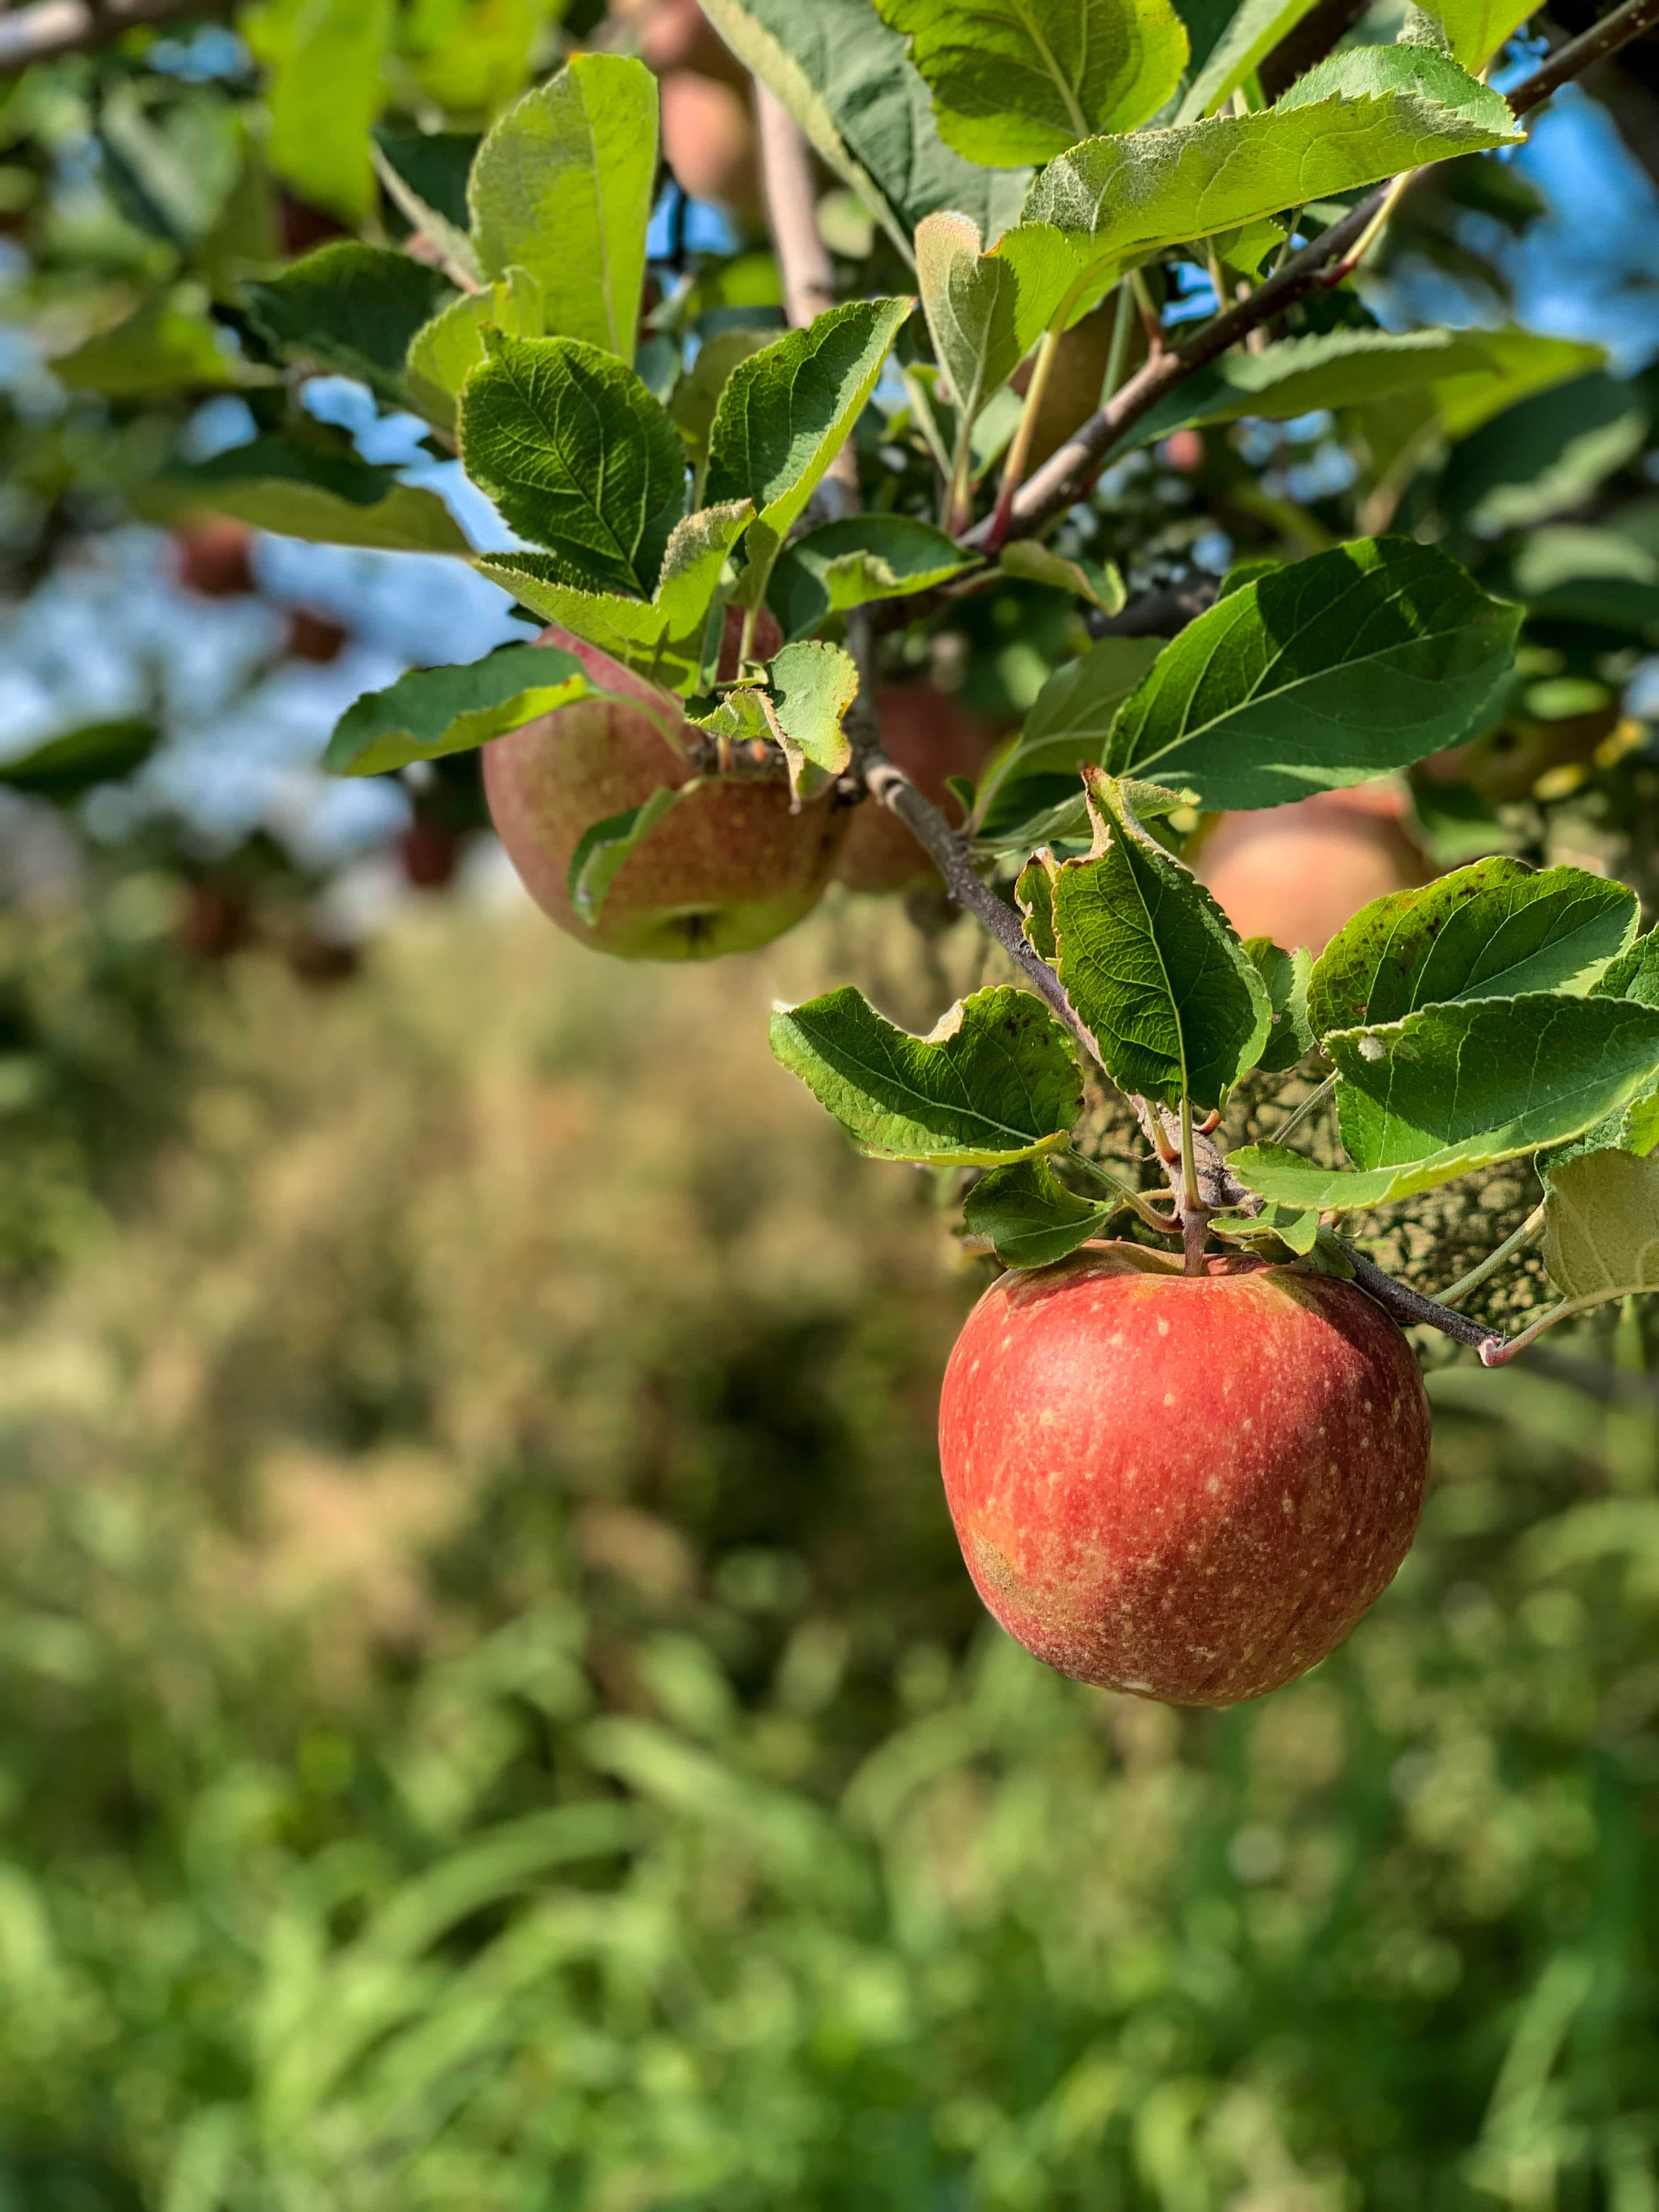 2019 apple picking photo diary I howsweeteats